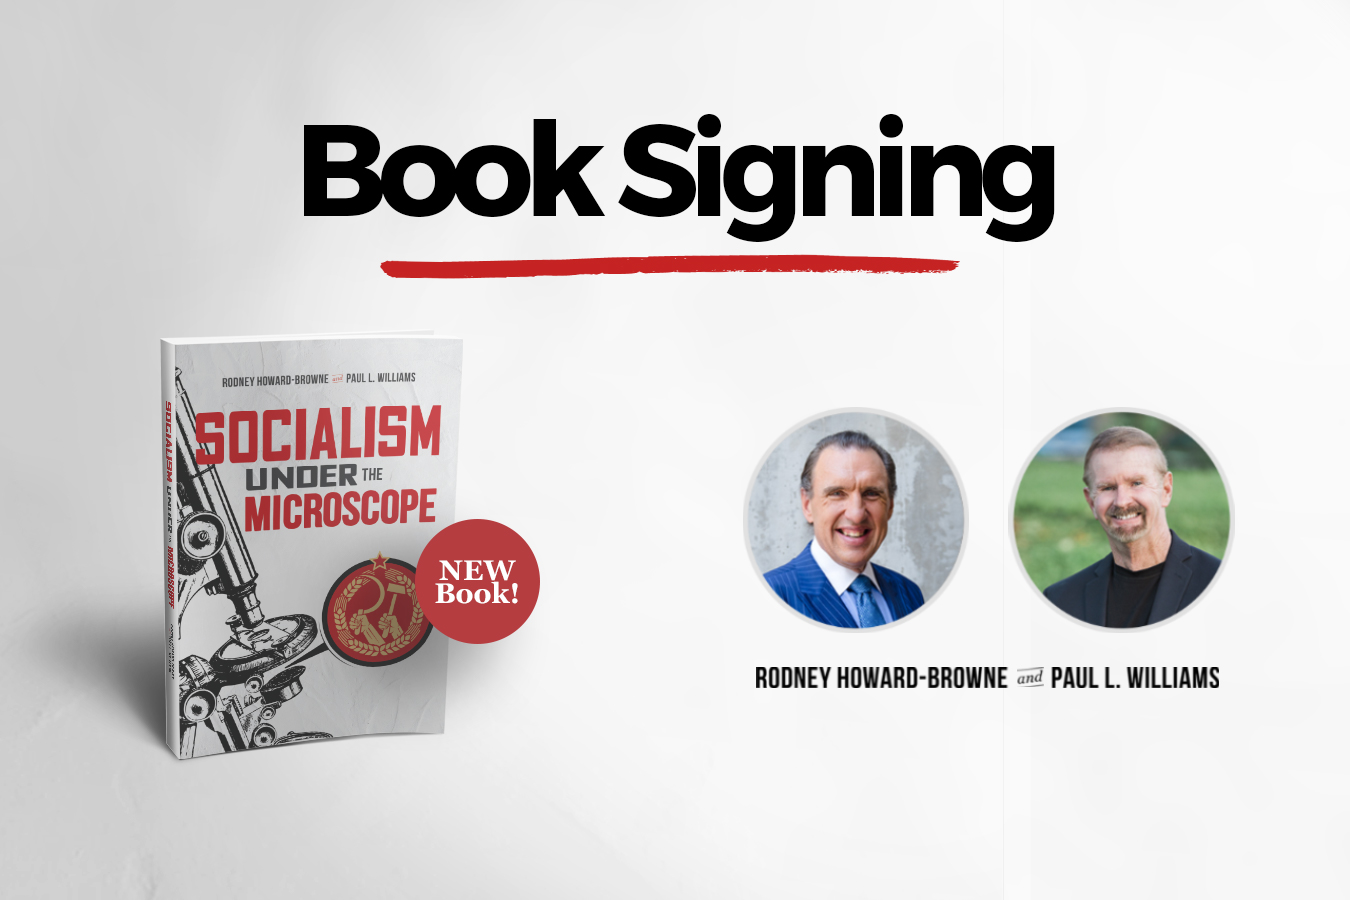 Socialism Under the Microscope: Book Signing